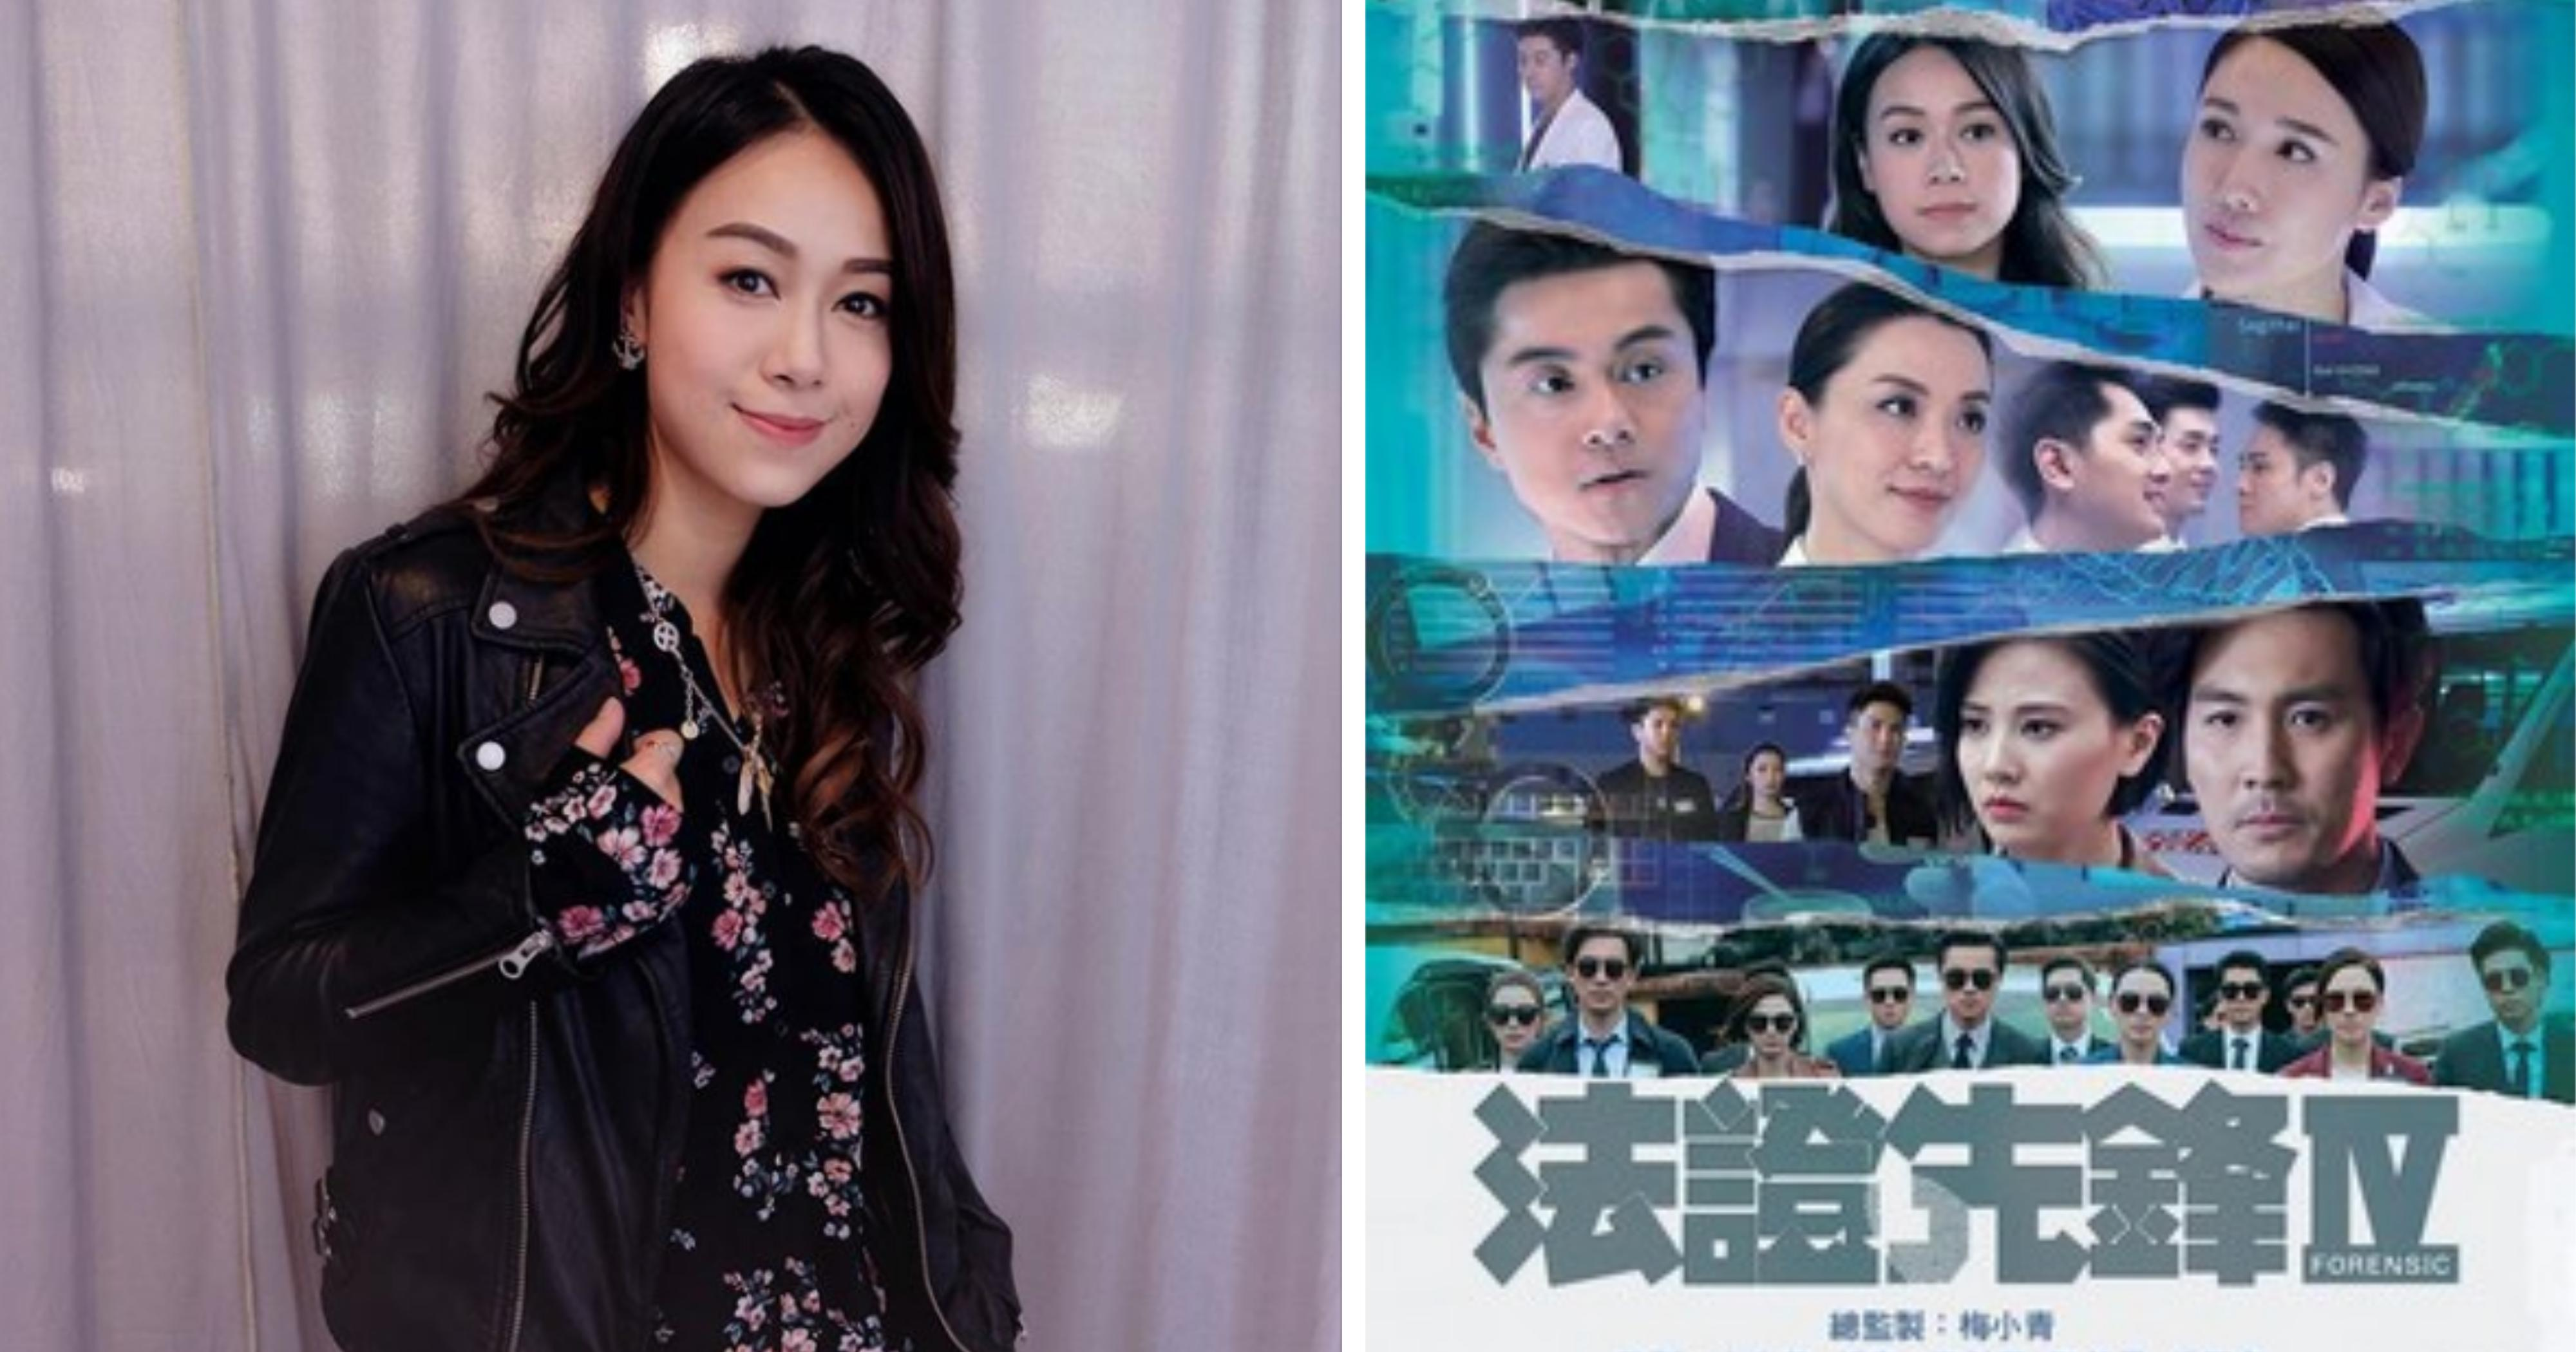 Tvb Spending S 1 7 Million To Re Shoot Remove Scenes With Jacqueline Wong As Lead Actress Mothership Sg News From Singapore Asia And Around The World